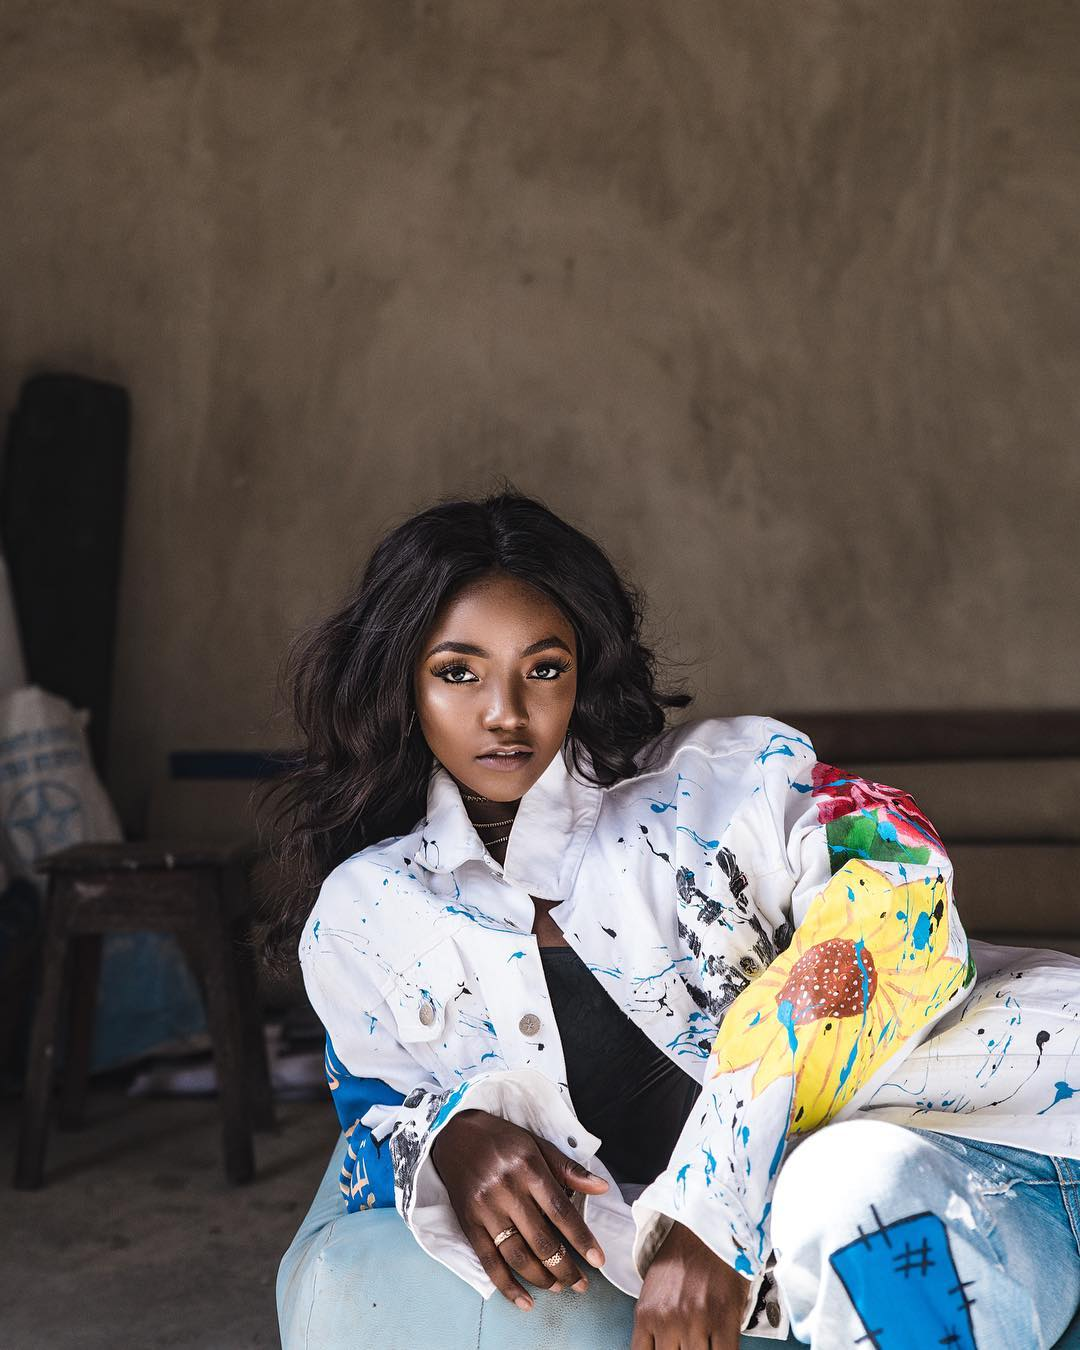 melanin-popping-simi-releases-the-visuals-to-her-new-single-gone-for-good-as-she-celebrates-her-30th-birthday-srcelebrate